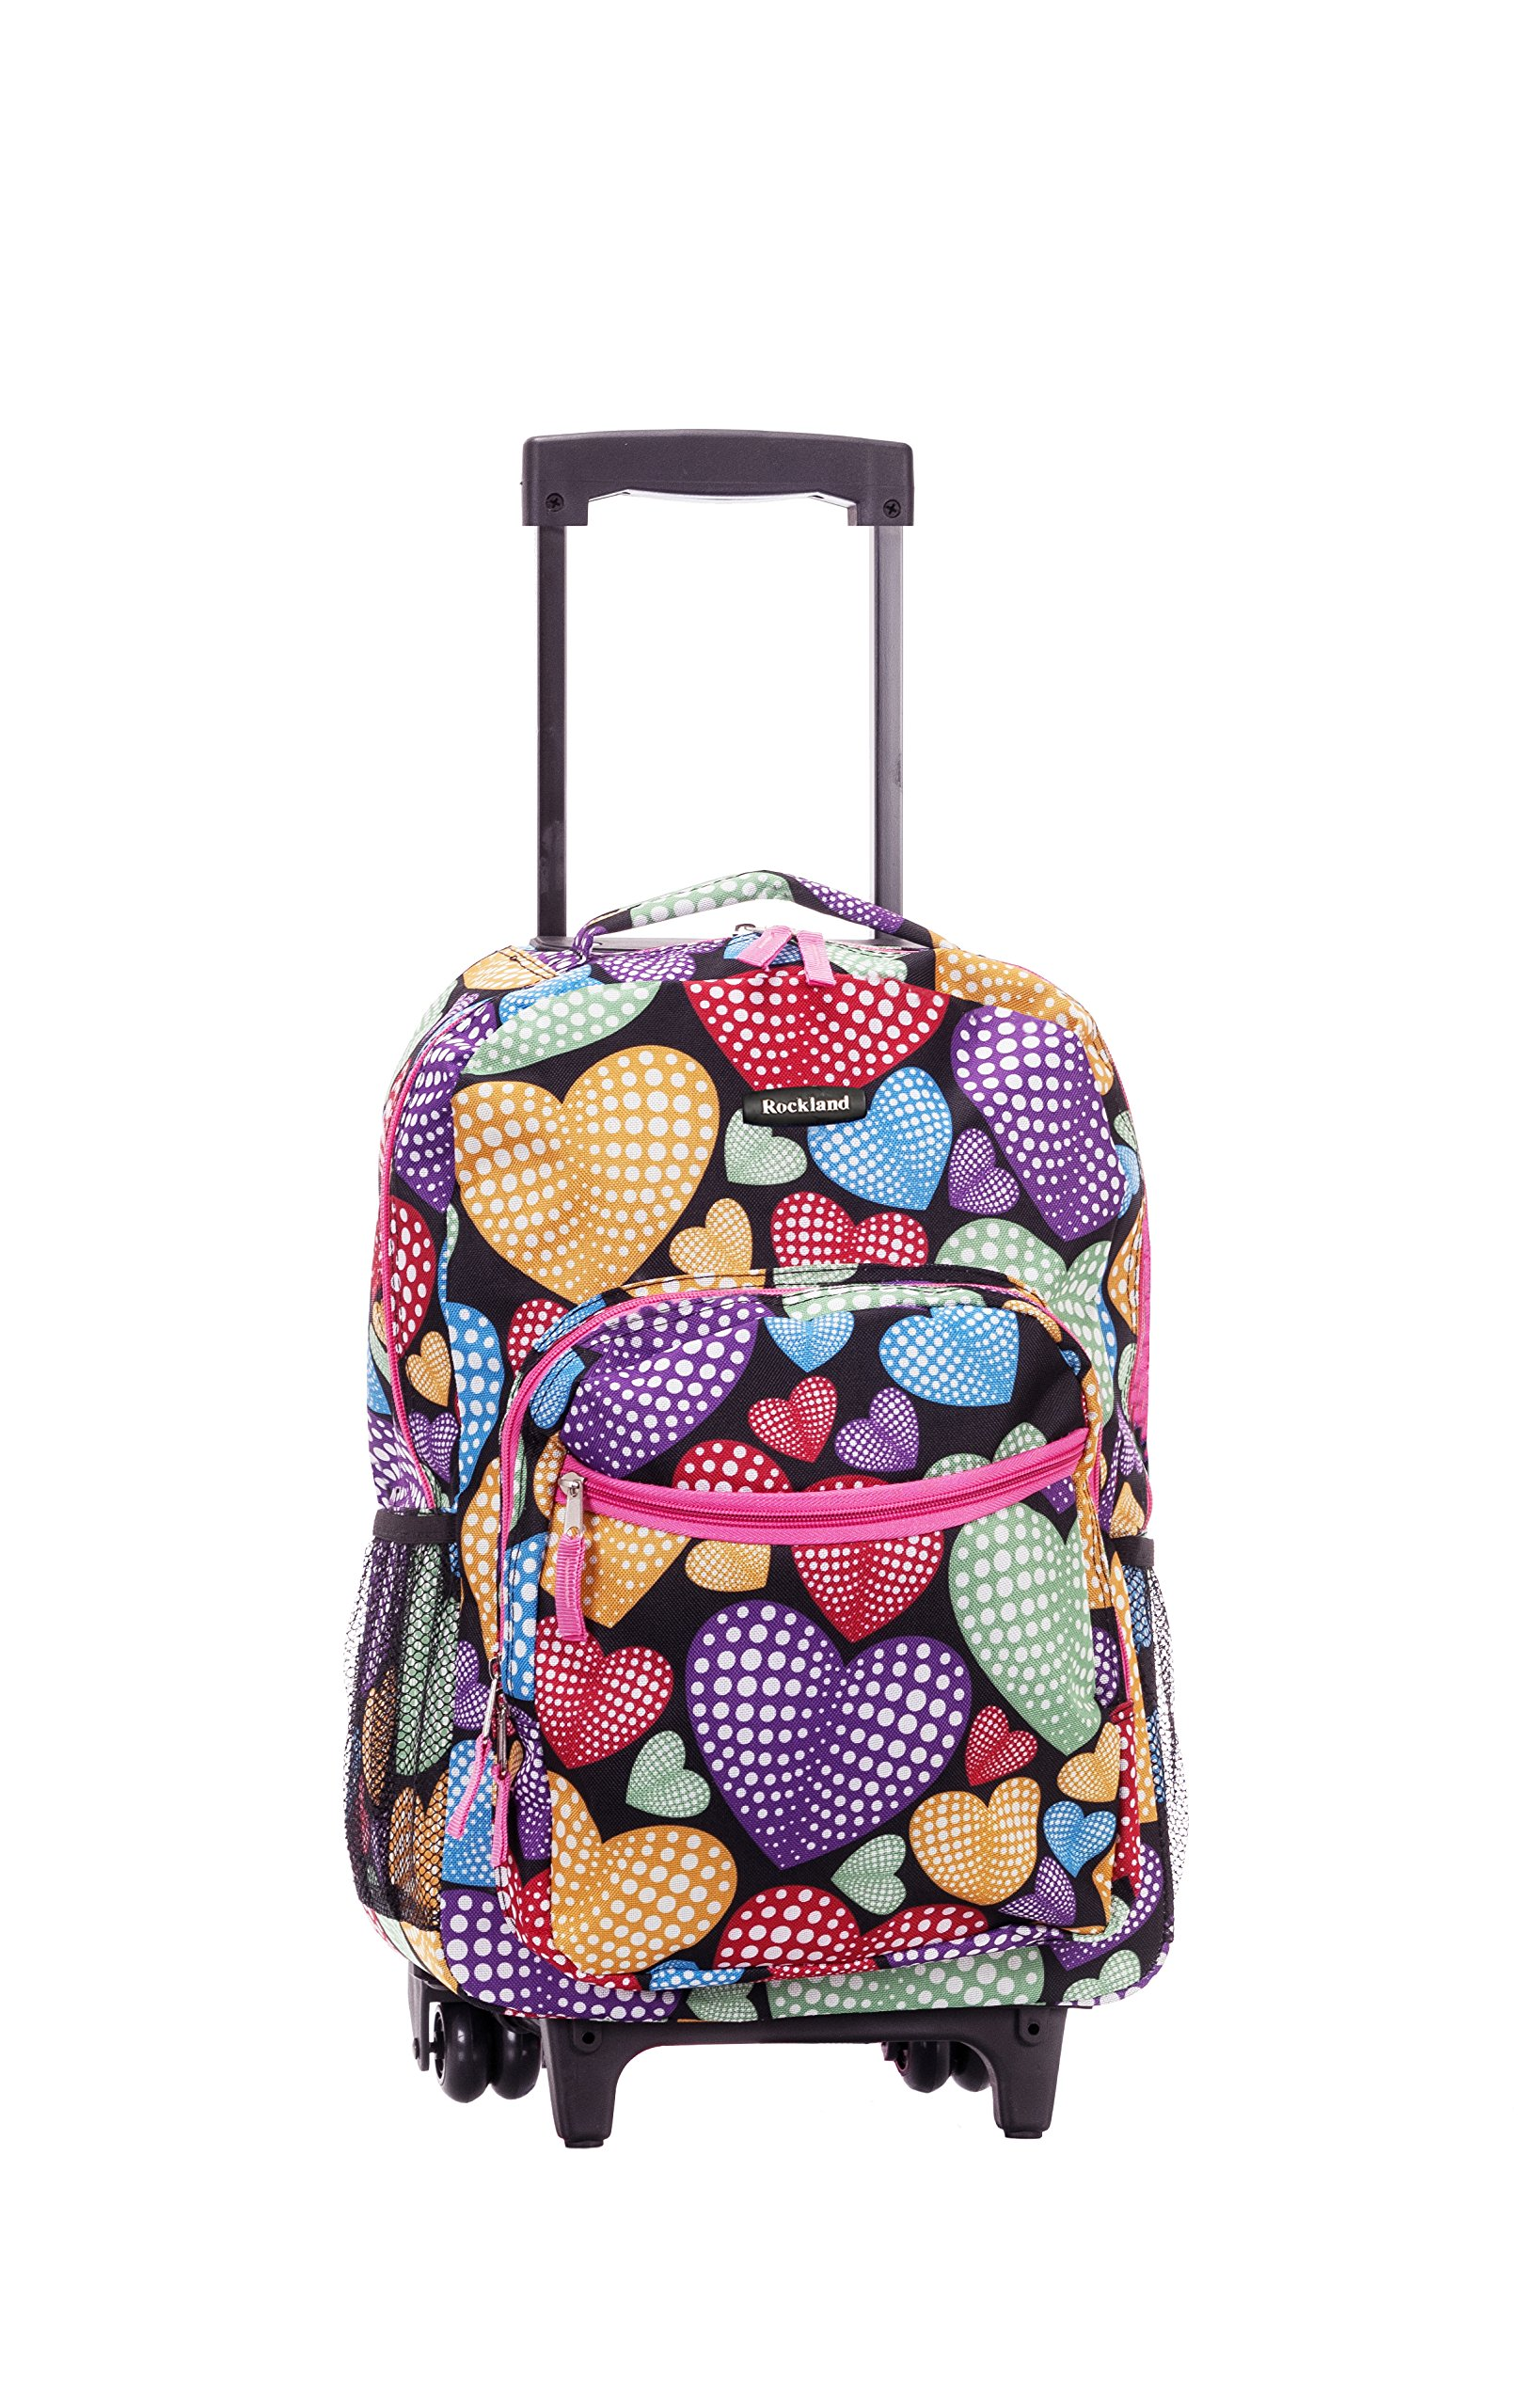 Rockland 17 Inch Rolling Backpack, Newheart, One Size